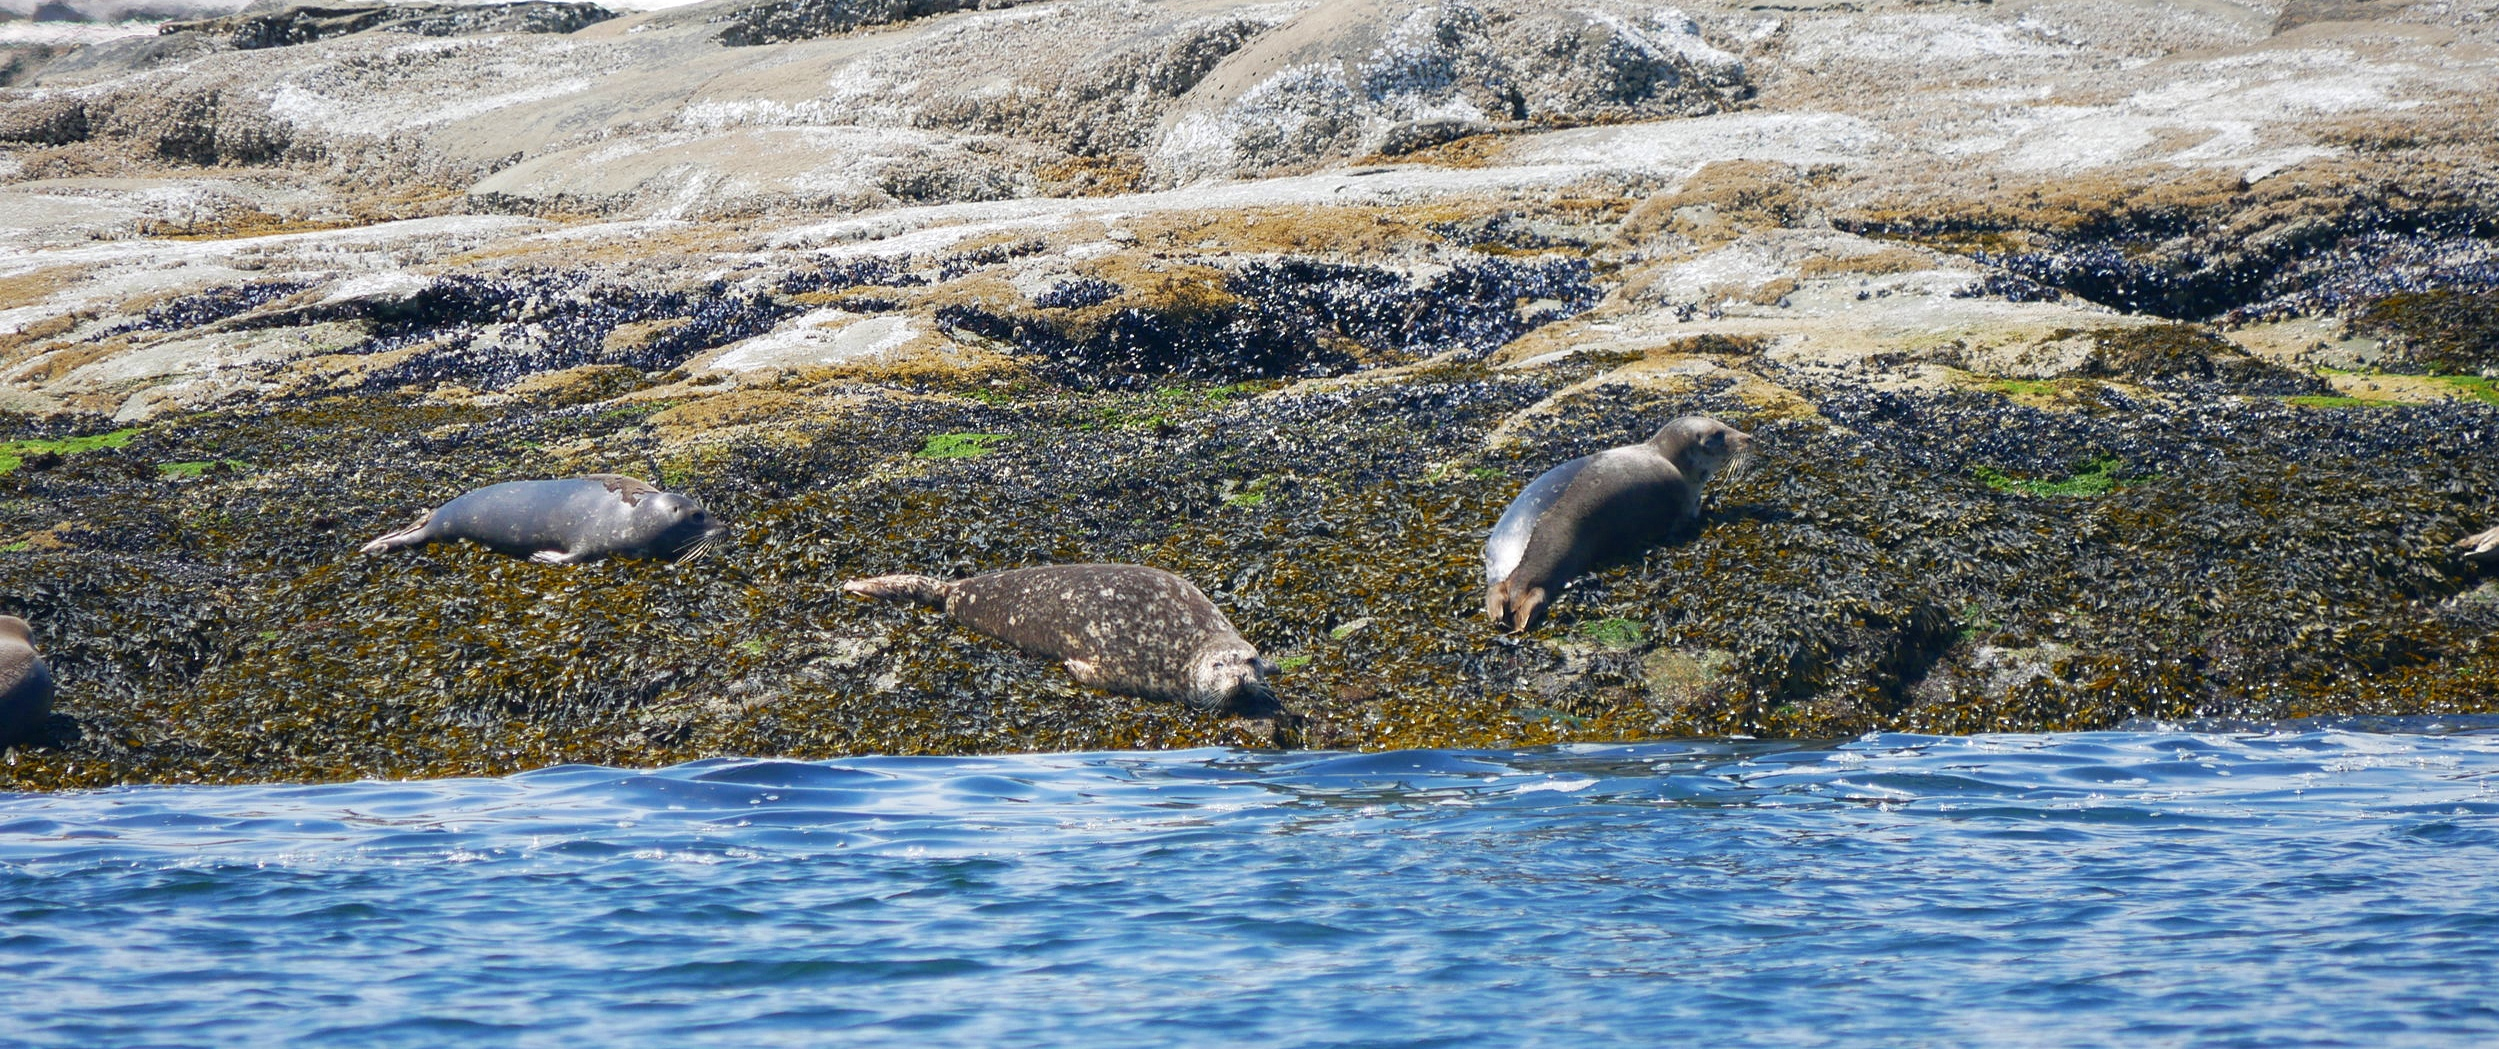 Harbour Seals camouflaging into the rocks! Photo by Rebeka Pirker (10.30)